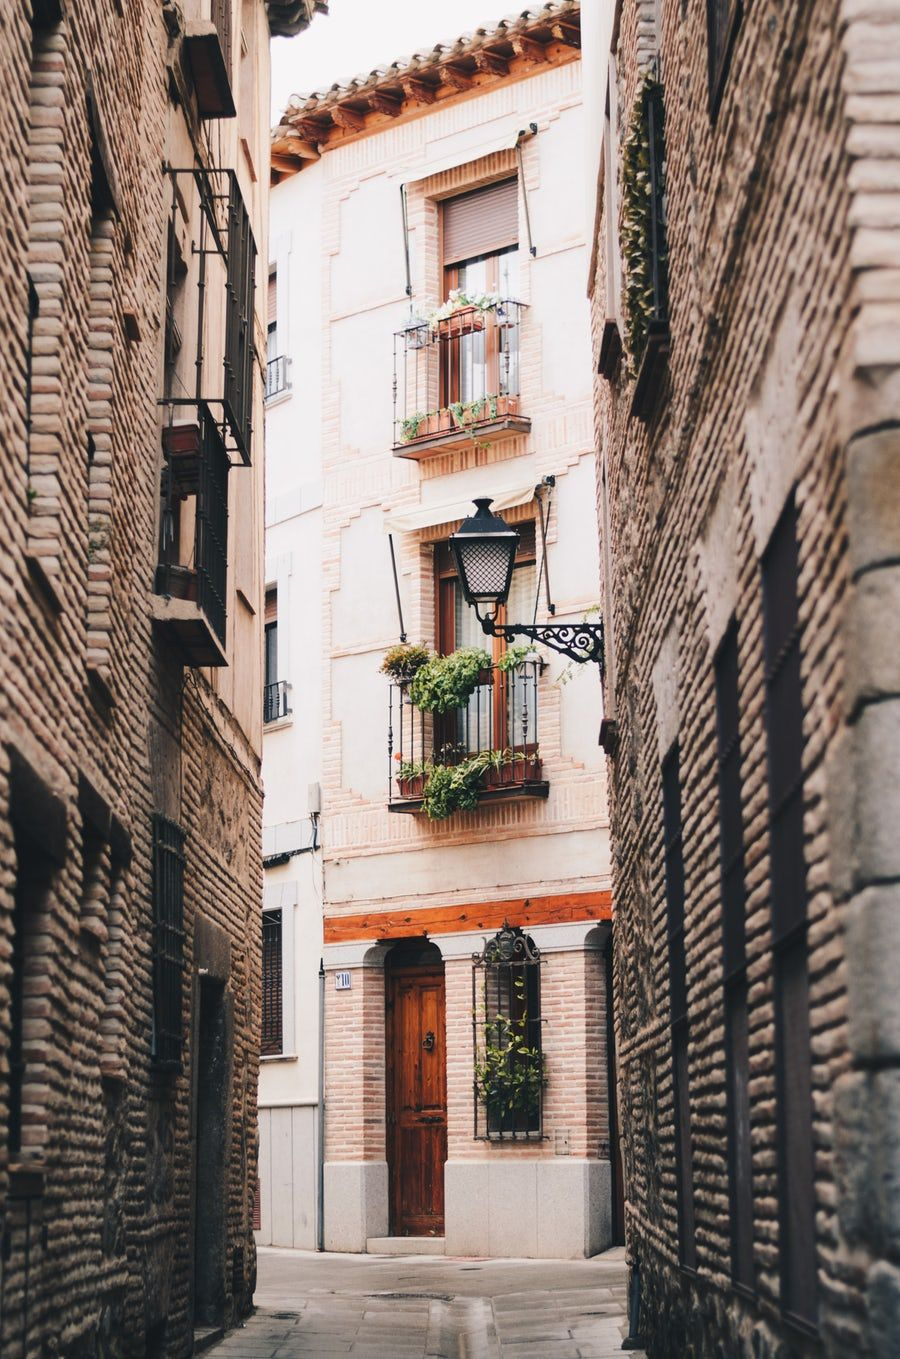 500 White Brick Pictures Hd Download Free Images On Unsplash Toledo Cathedral Small Group Tours White Brick